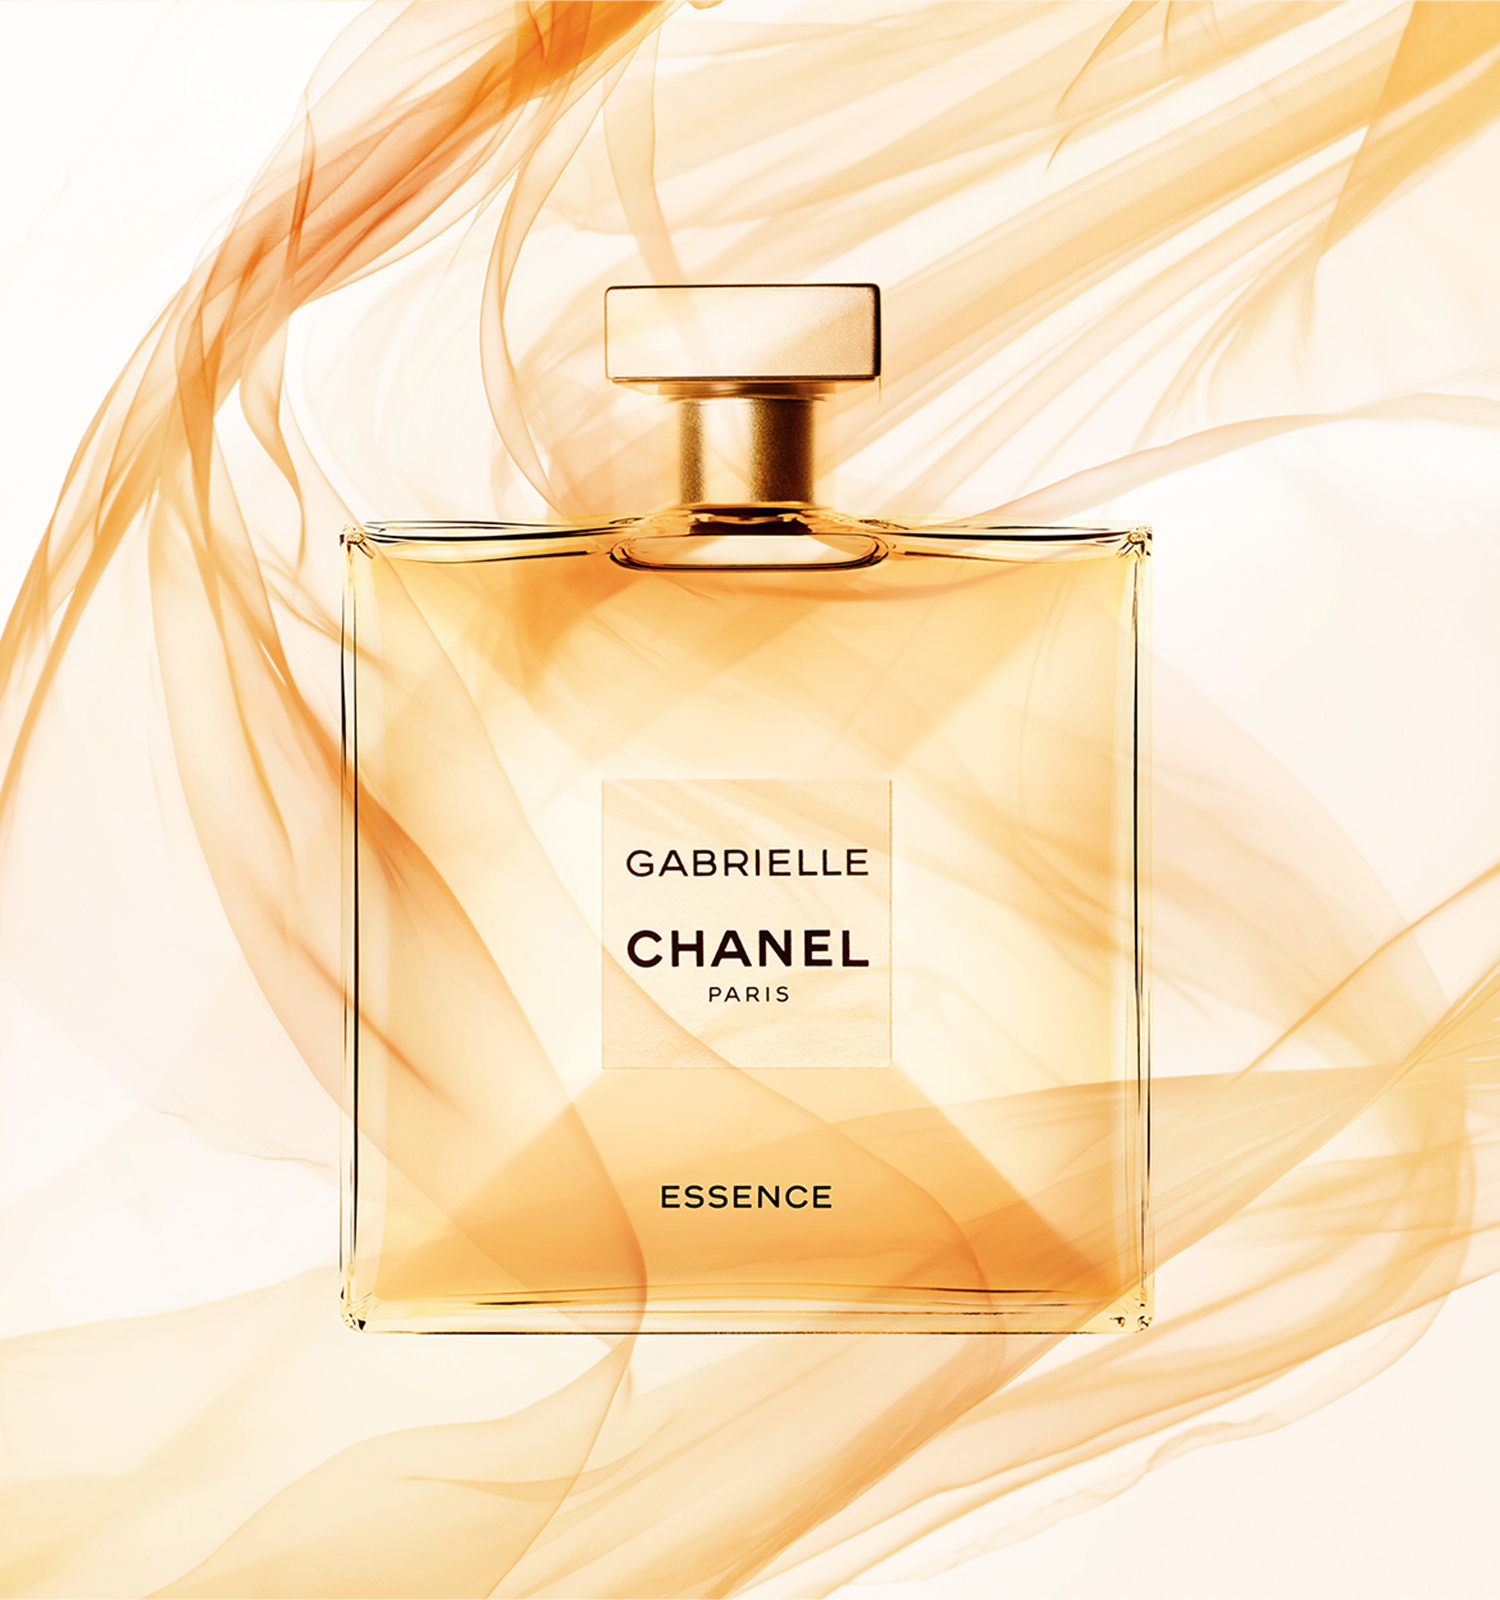 Gabrielle CHANEL - Fragrance | CHANEL